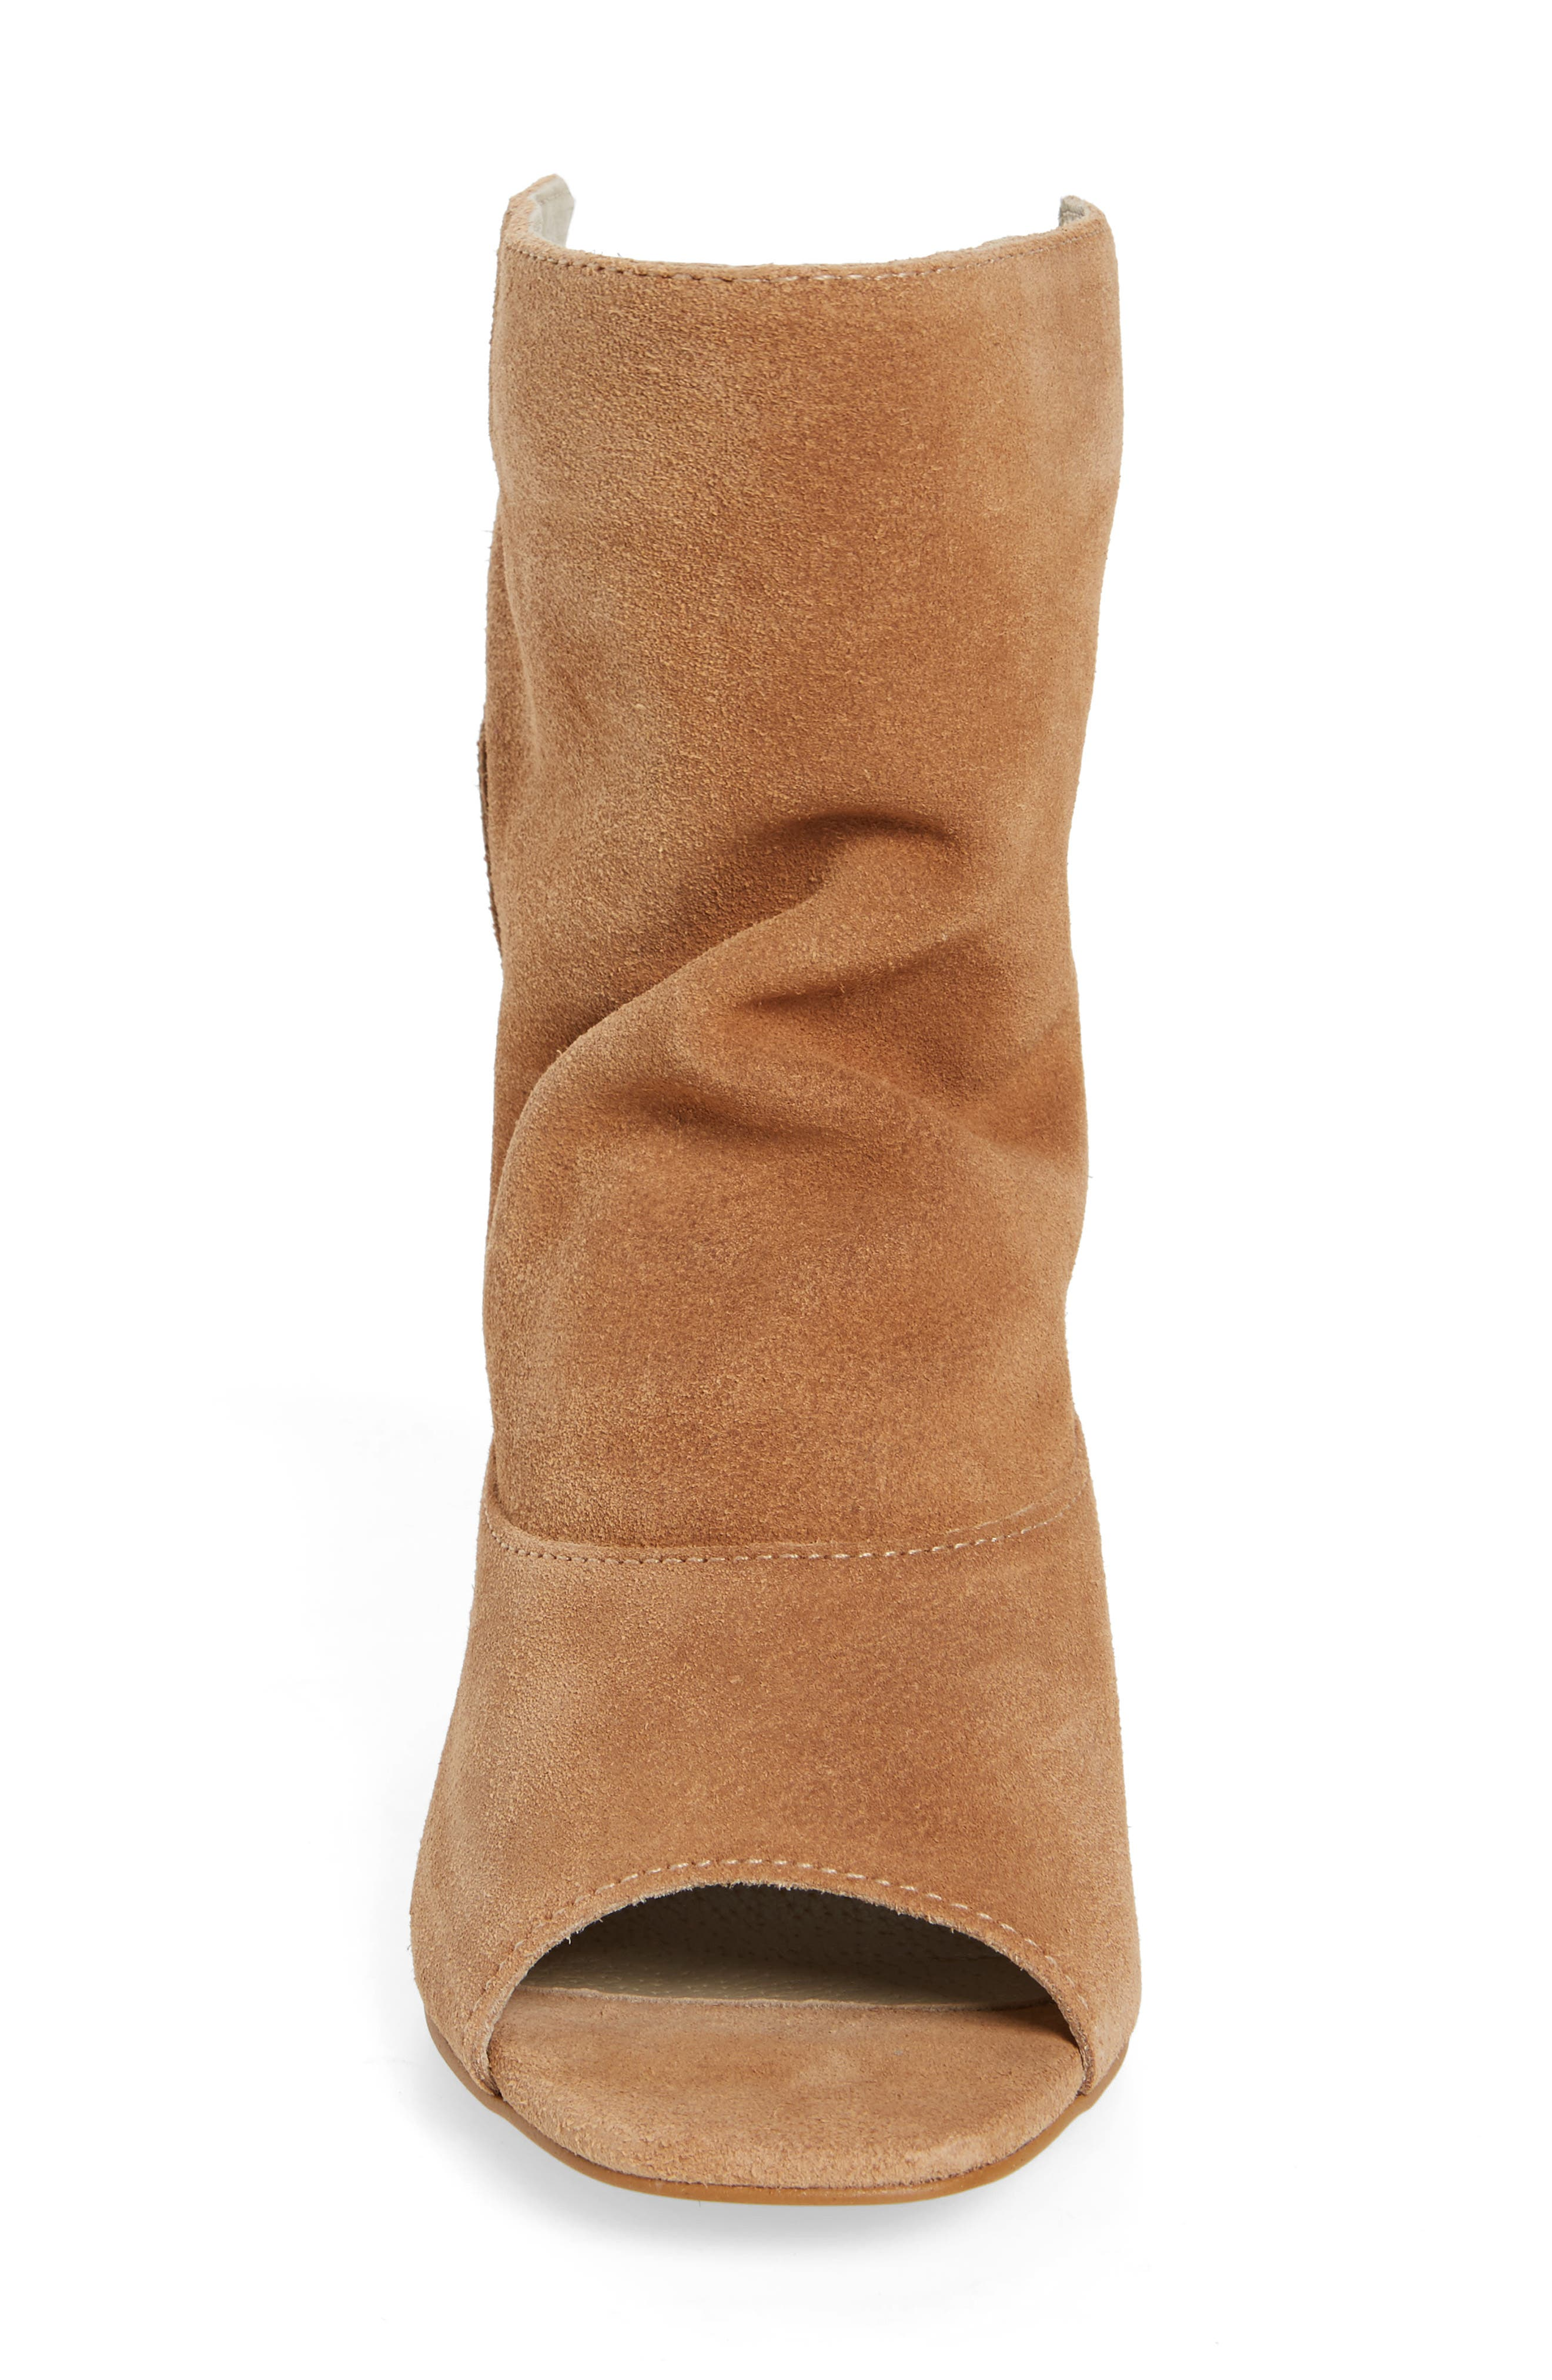 Gordy Peeptoe Bootie,                             Alternate thumbnail 3, color,                             Natural Suede